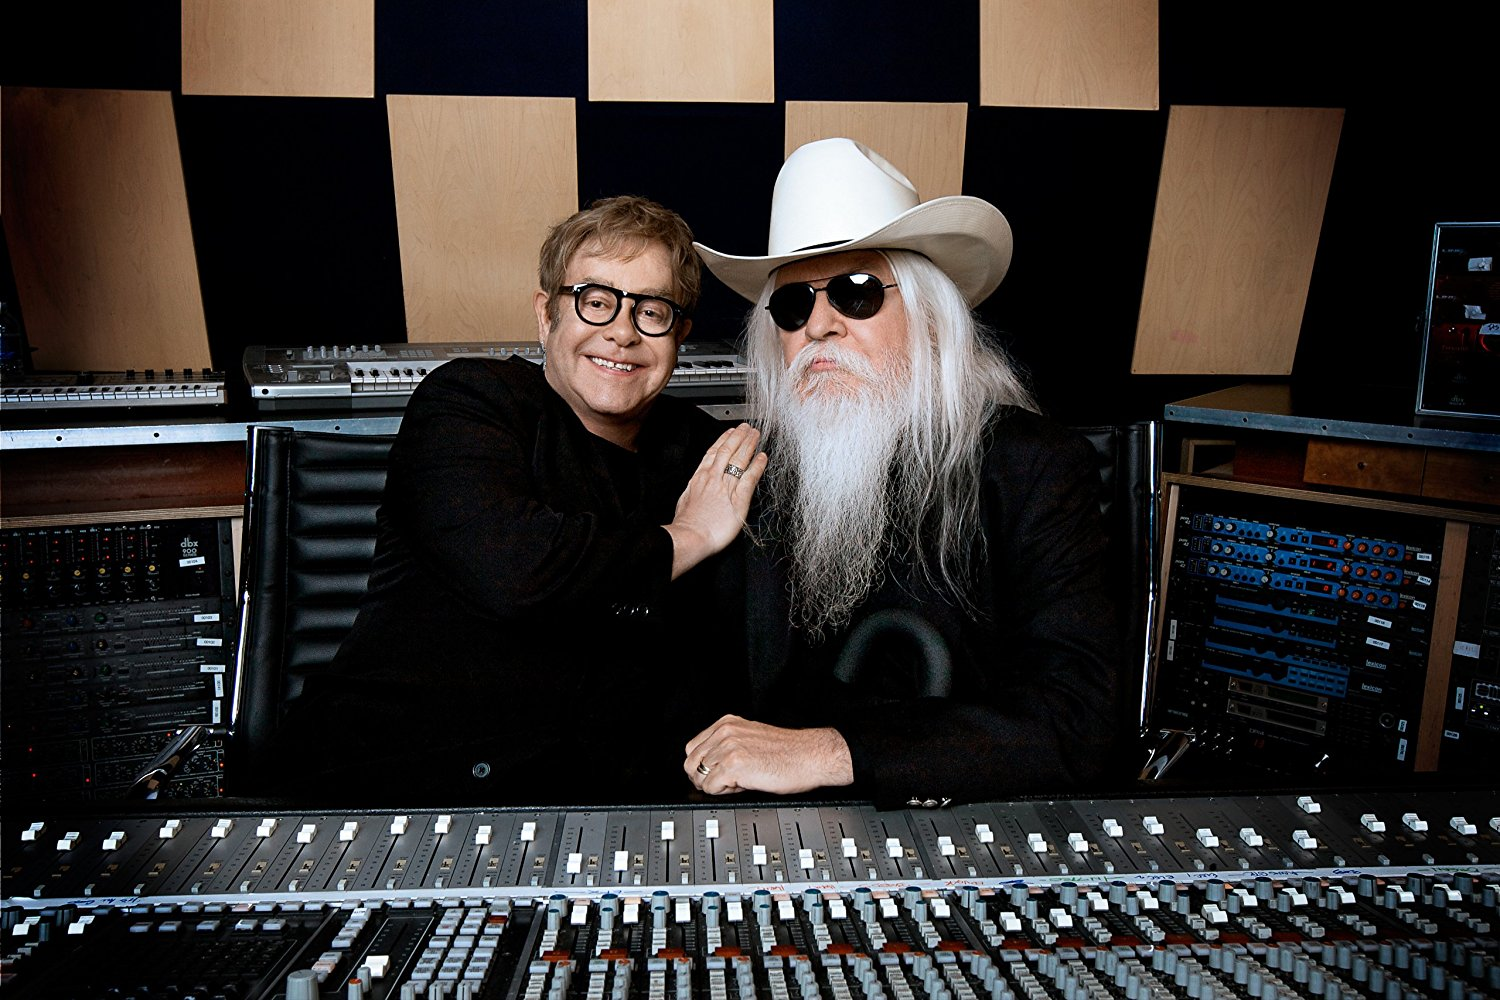 Intersticio: ELTON JOHN & LEON RUSSELL, The Union: Piano magistral ...